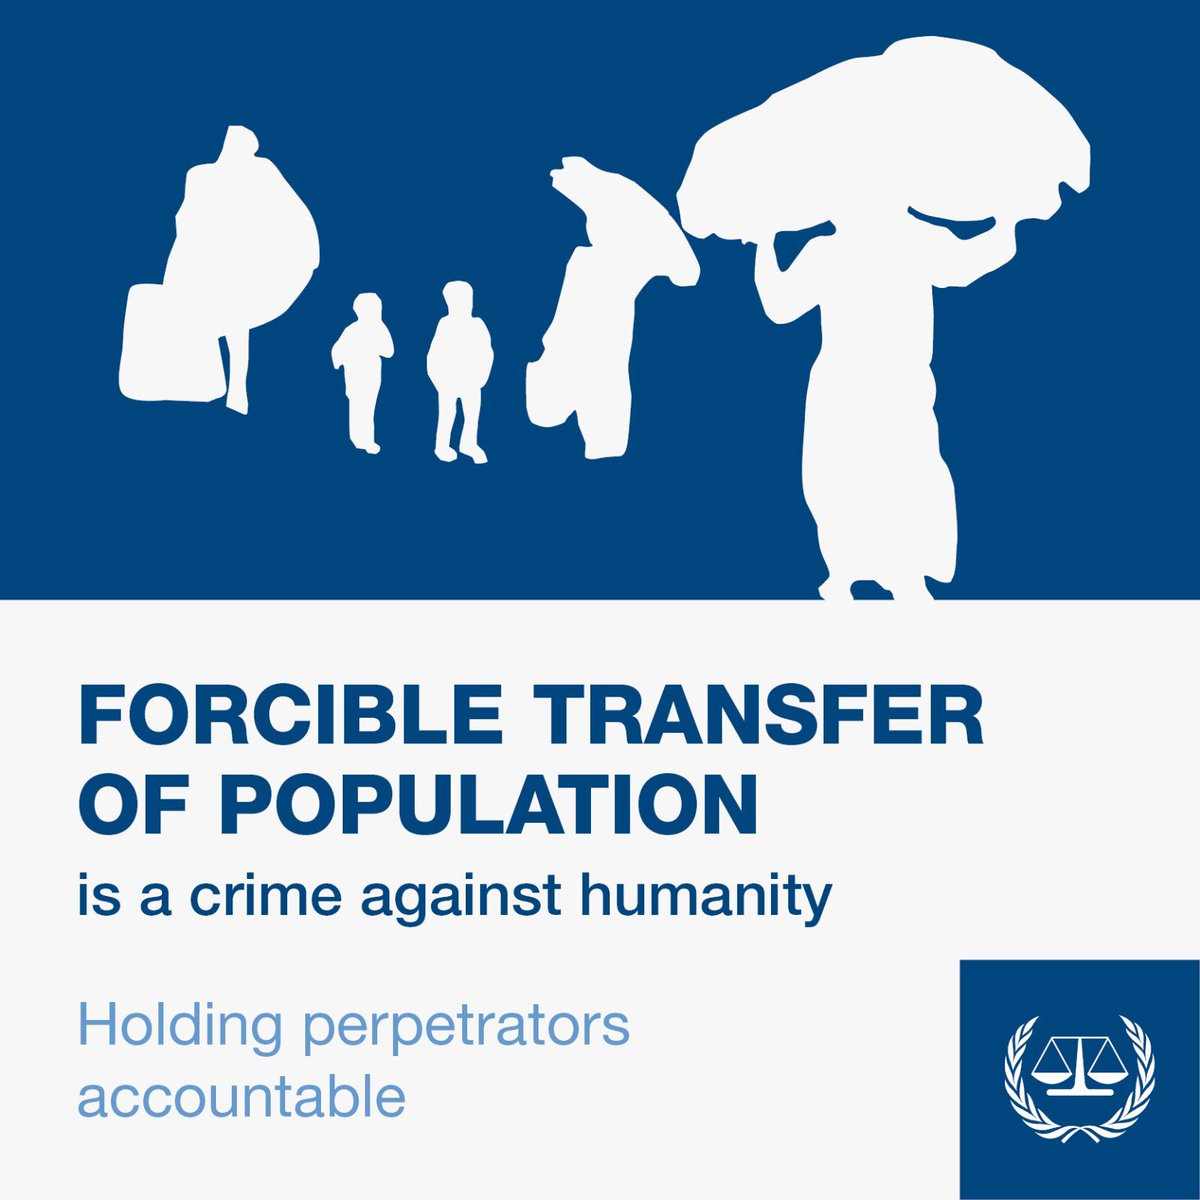 Forcible transfer of population is a crime against humanity under the #ICC #RomeStatute. The #ICC is part a global movement to end impunity for the most serious crimes of international concern. Find out more ➡https://www.icc-cpi.int/about/how-the-court-works… #morejustworld